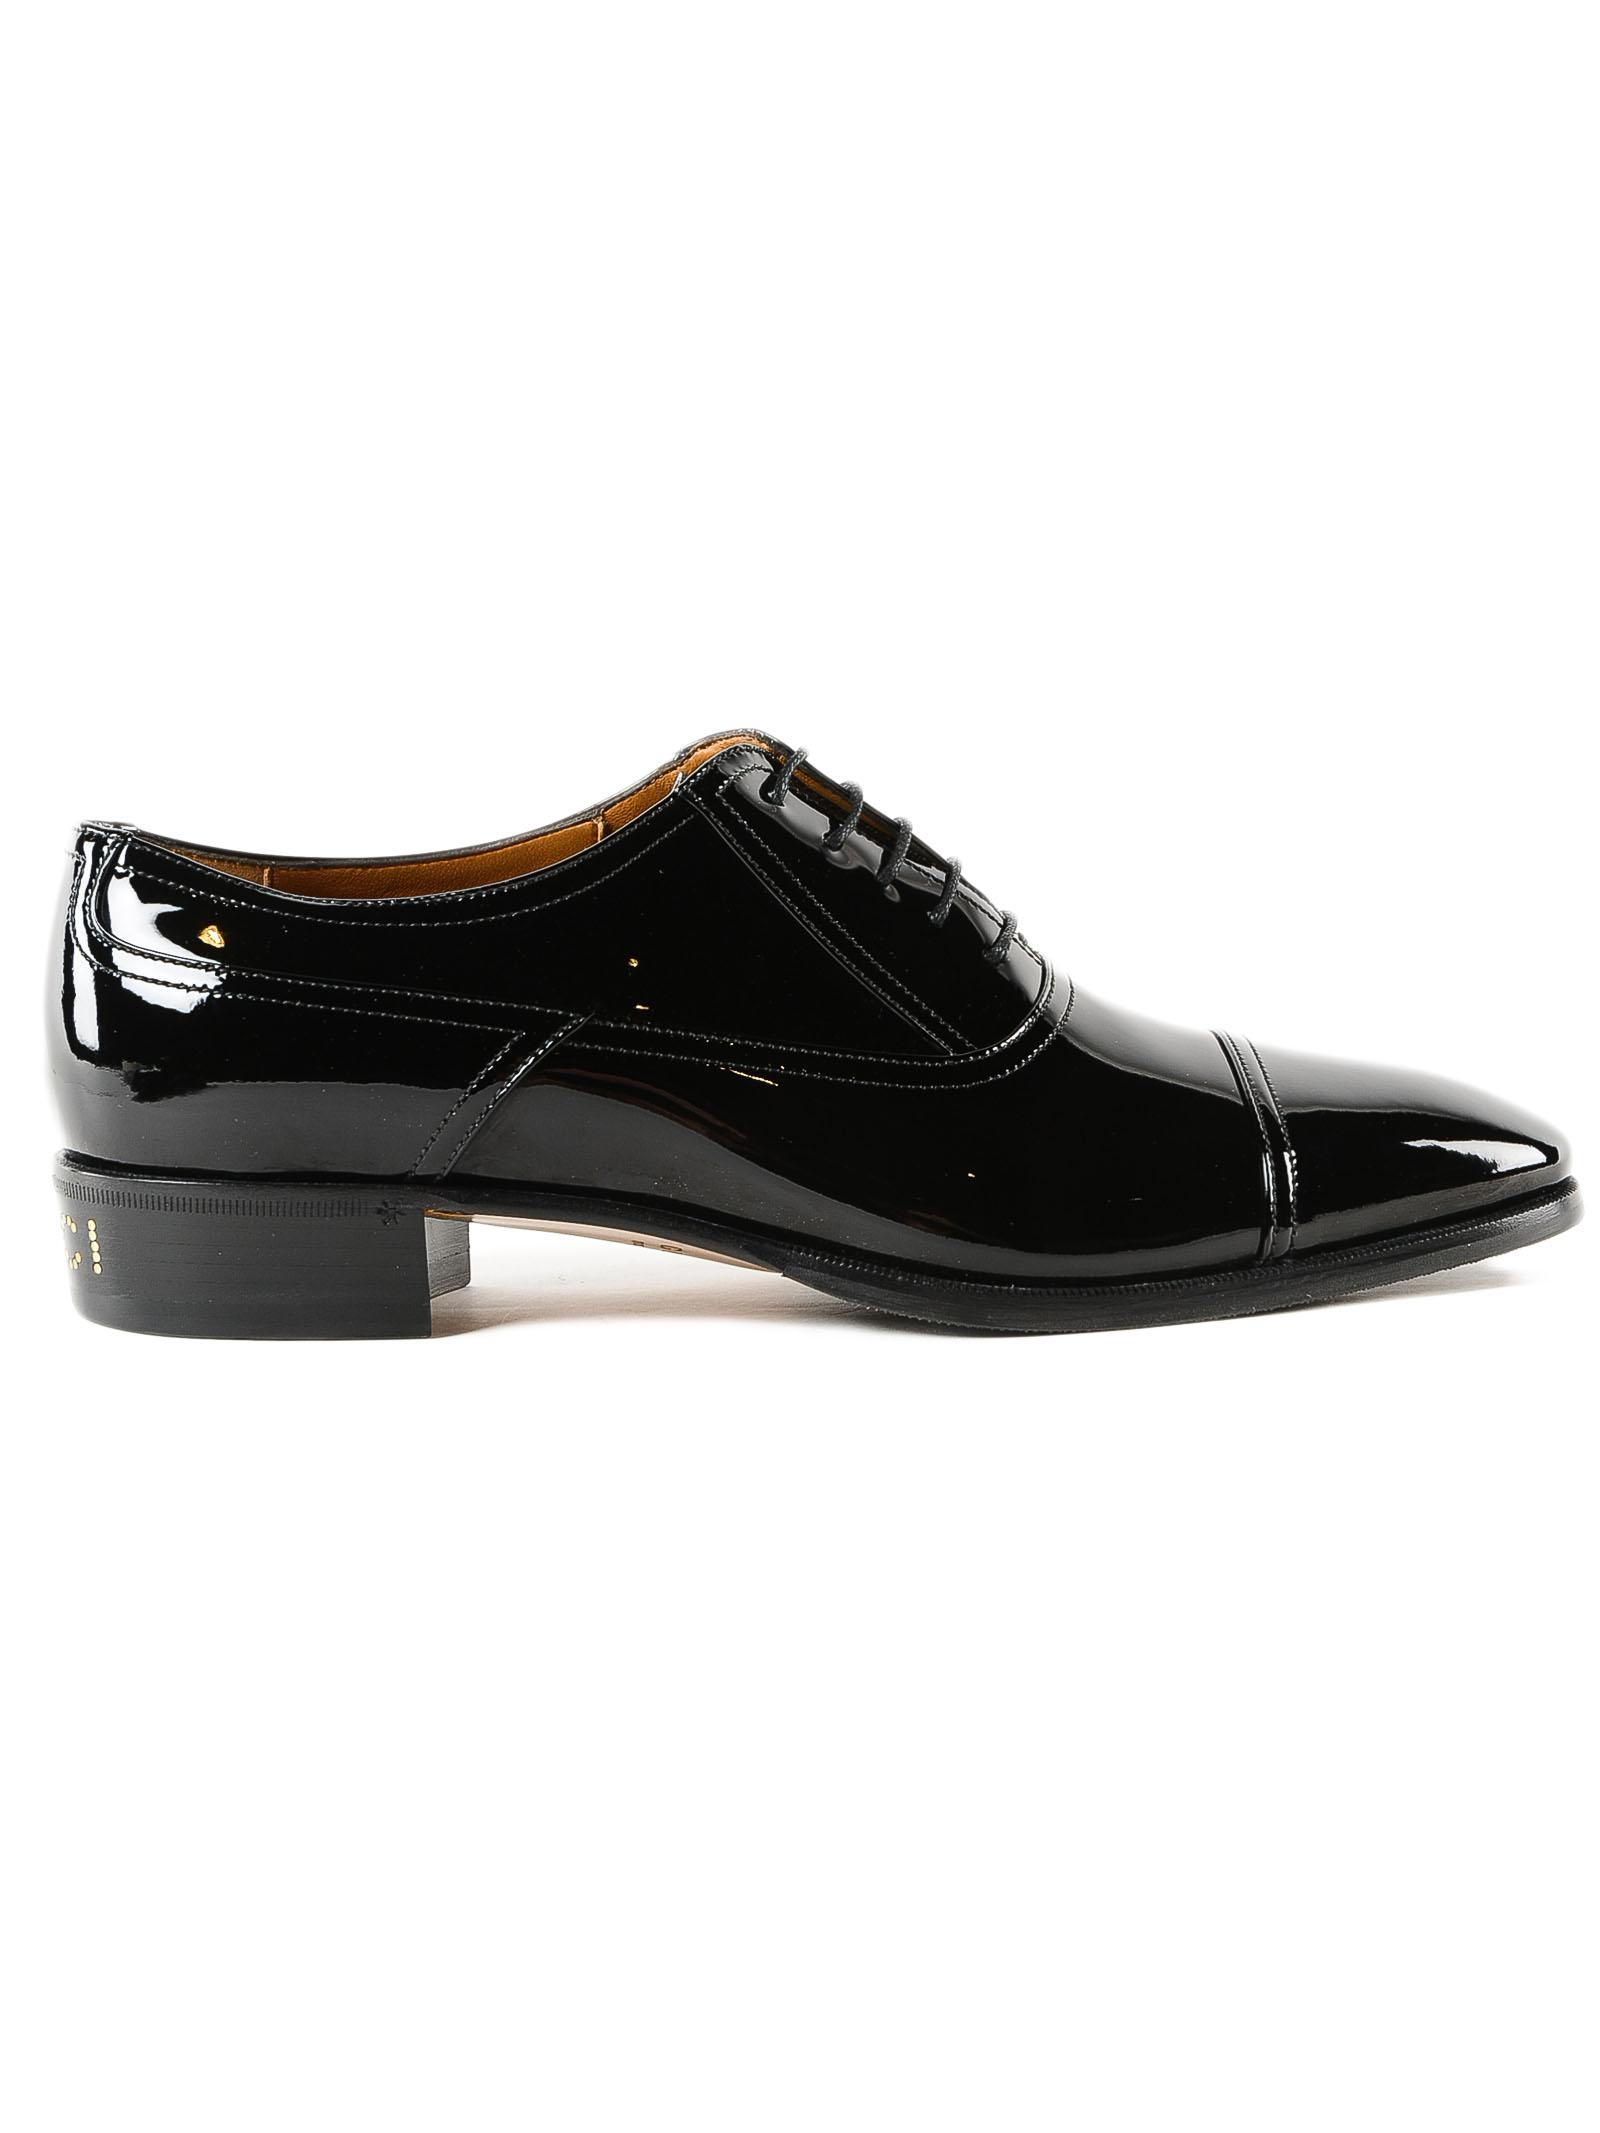 9deca3673 Gucci Lace Up Vernice Crystal in Black for Men - Lyst